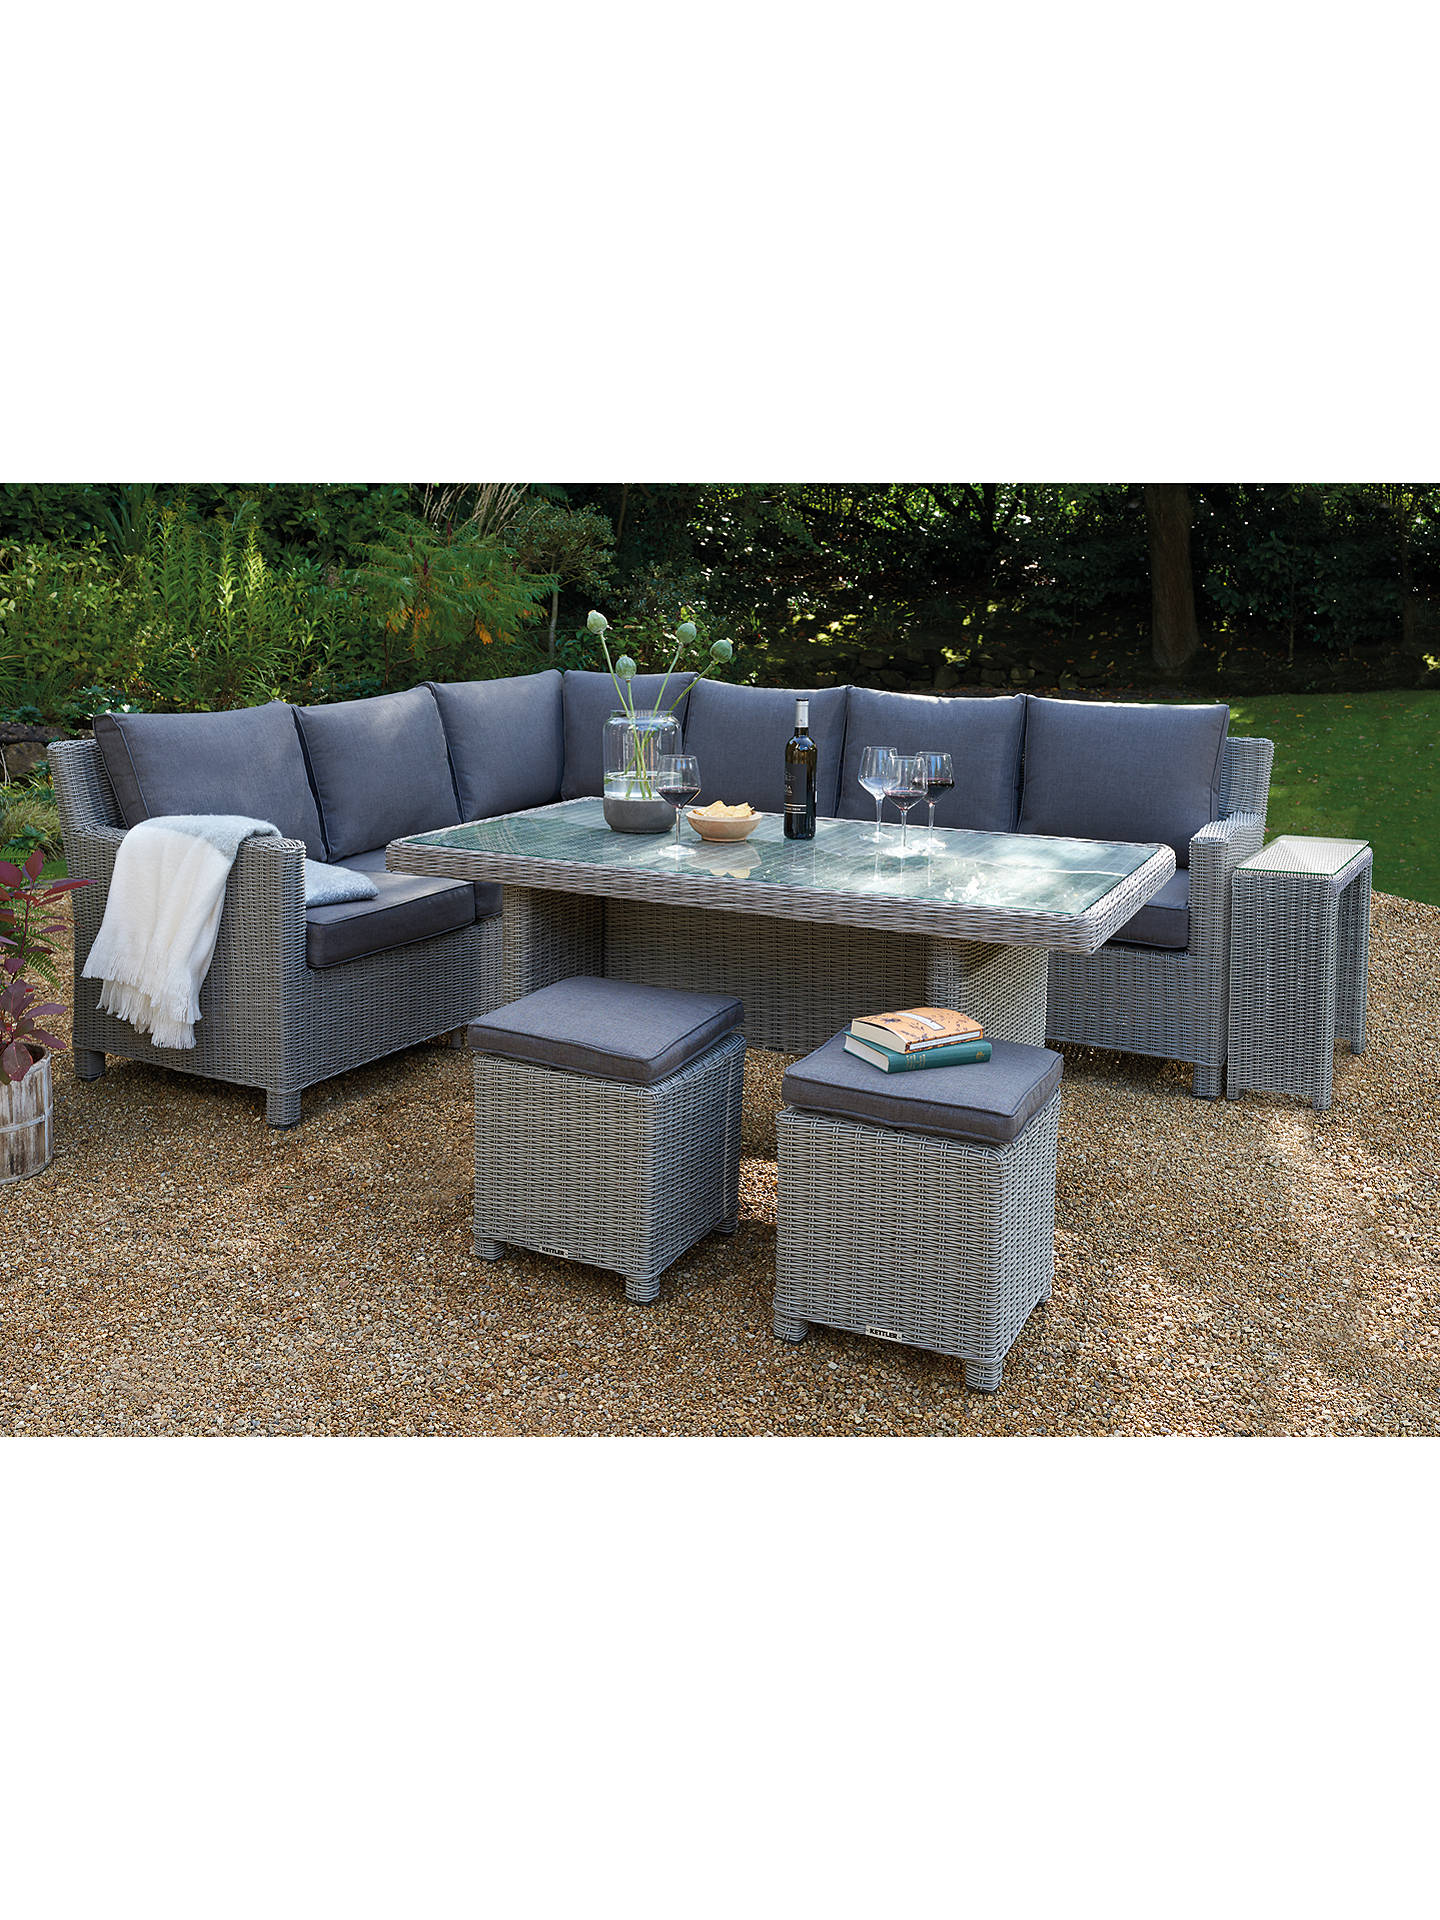 e89f890cf576 Buy KETTLER Palma 8 Seat Corner Garden Glass Table / Chairs Lounge Set with Side  Table ...